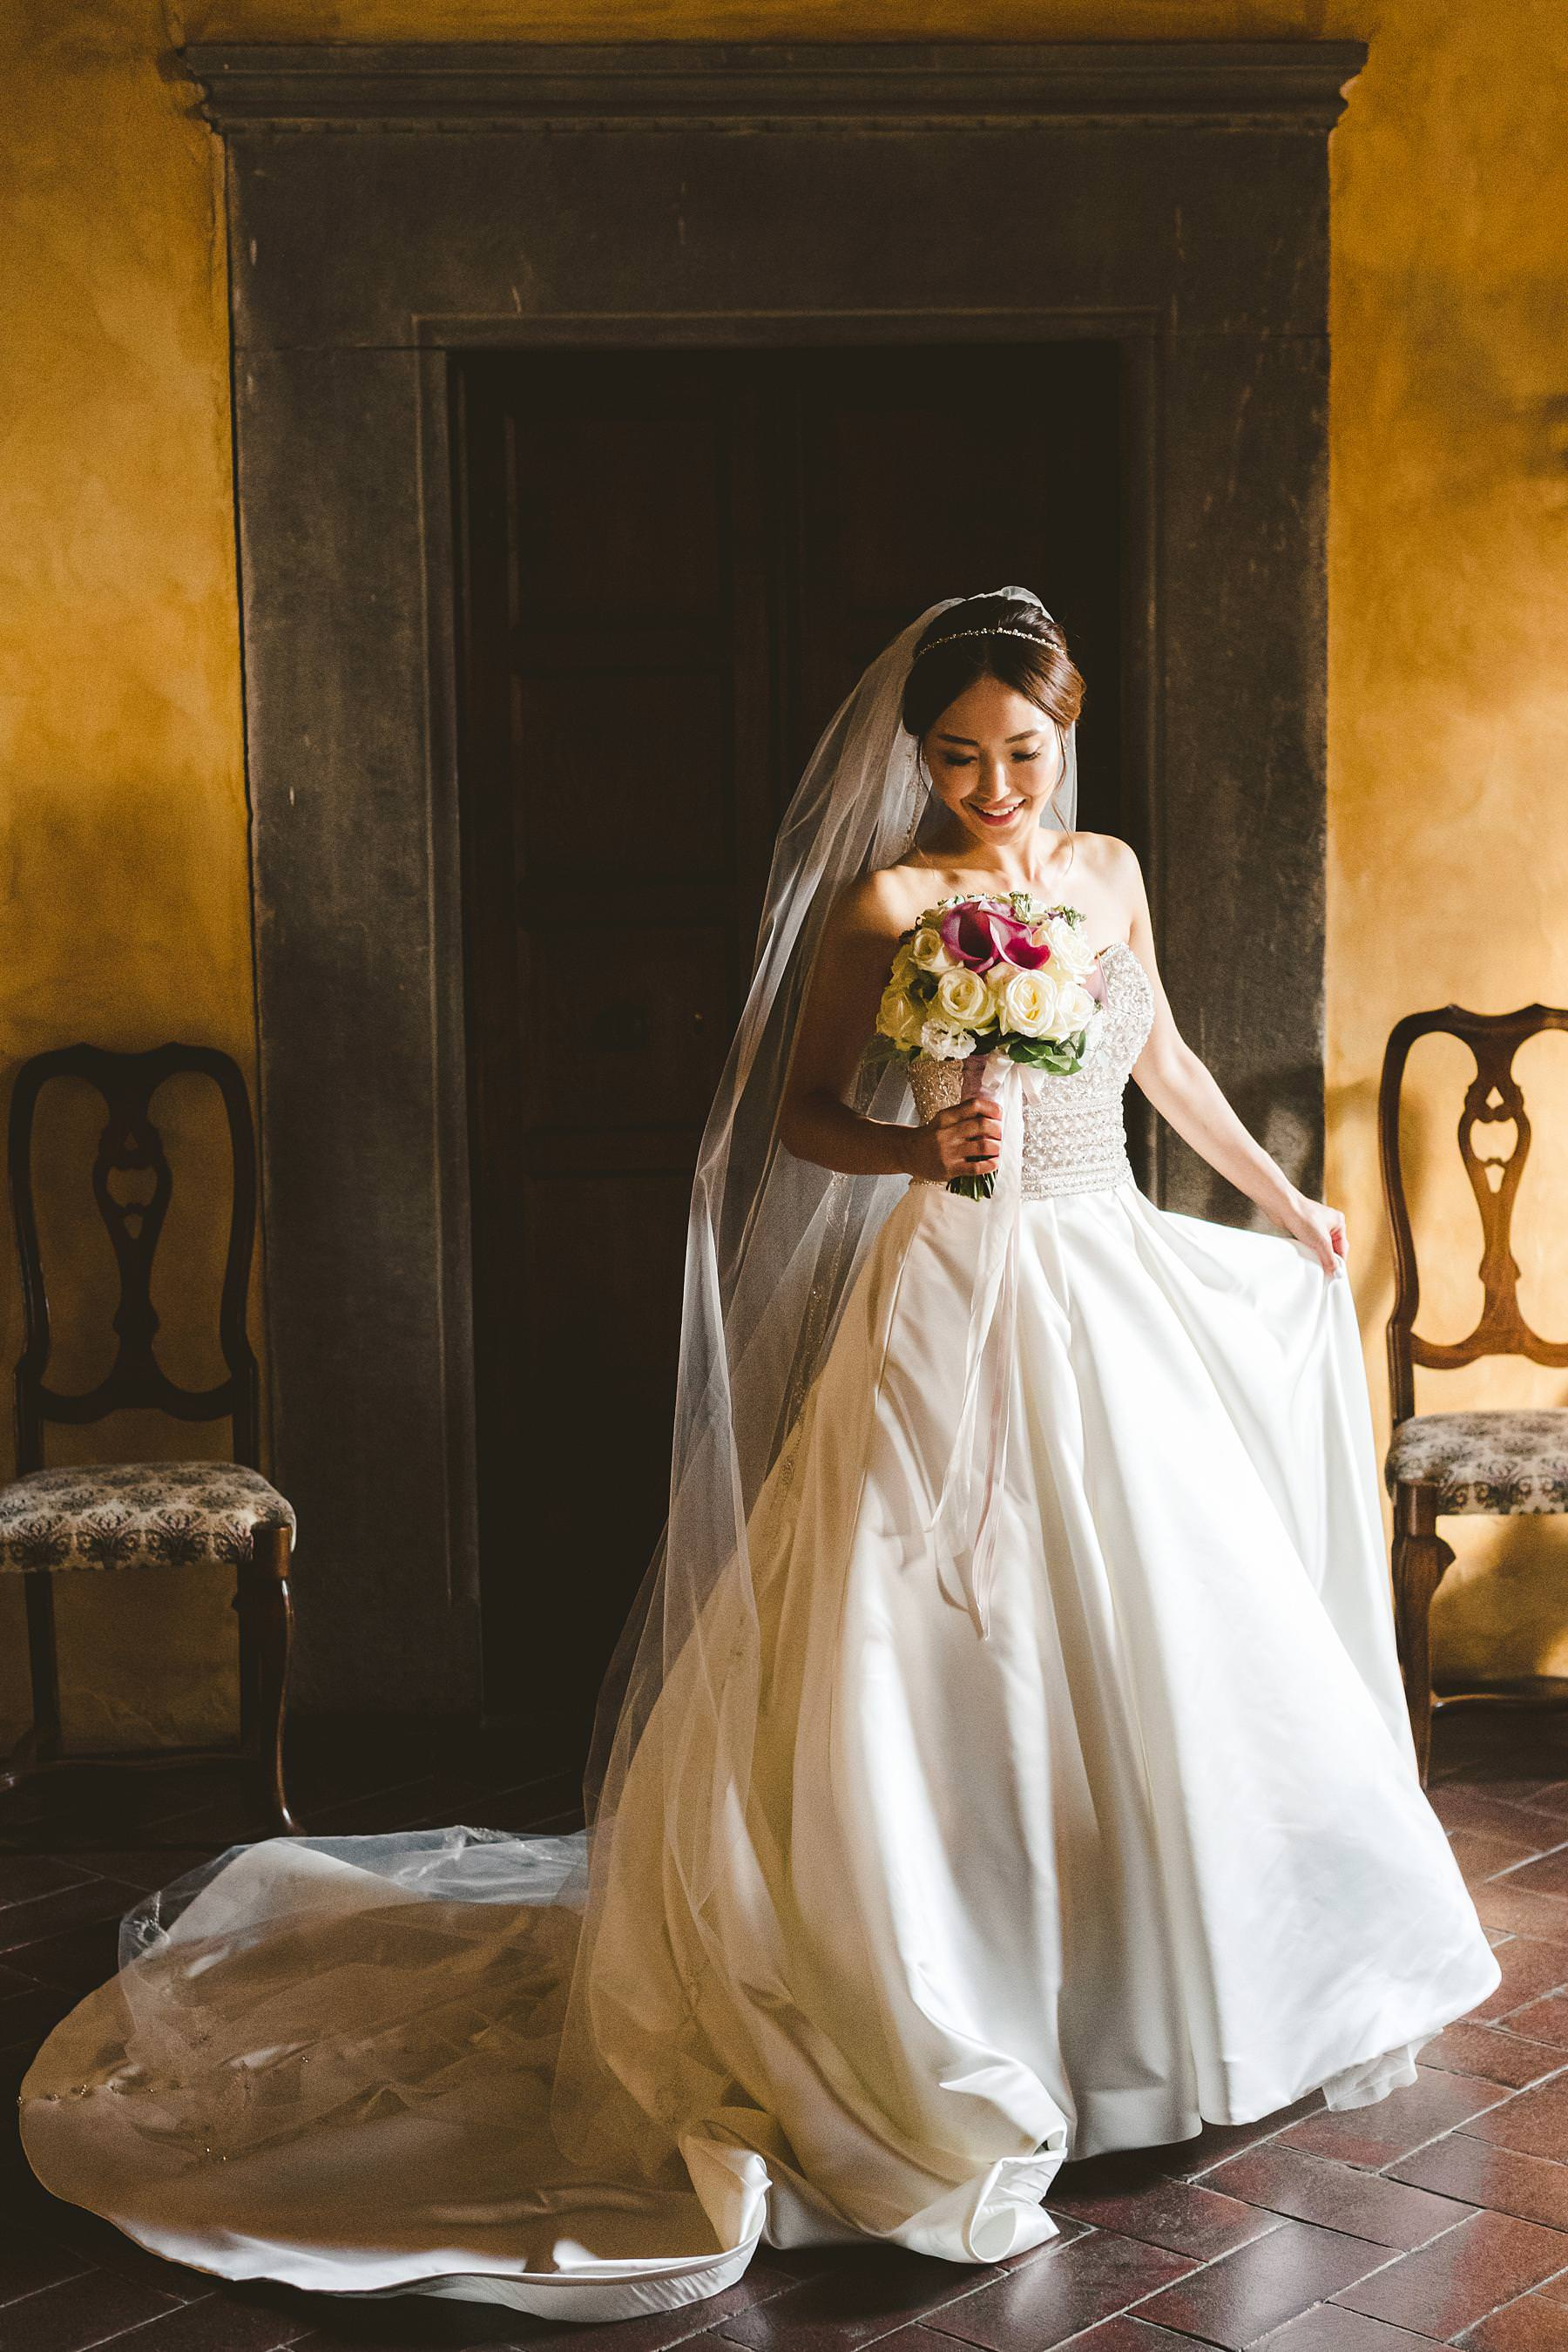 Beautiful bride Elise in Maggie Sottero wedding gown and her amazing cram and mauve bouquet by Jardin Divers. Intimate elegant destination wedding at Castello Il Palagio